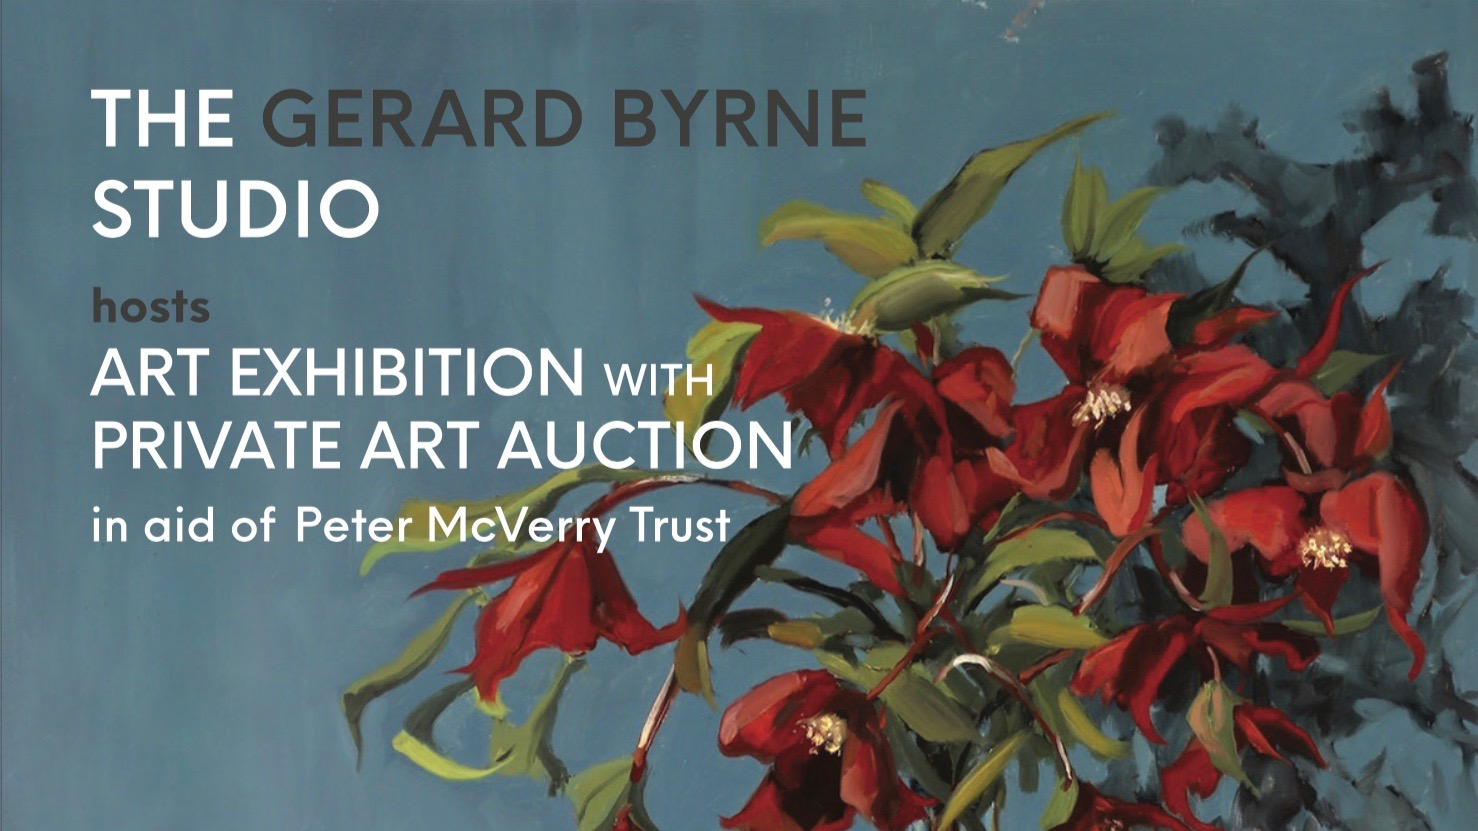 ART AUCTION in aid of Peter McVerry Trust